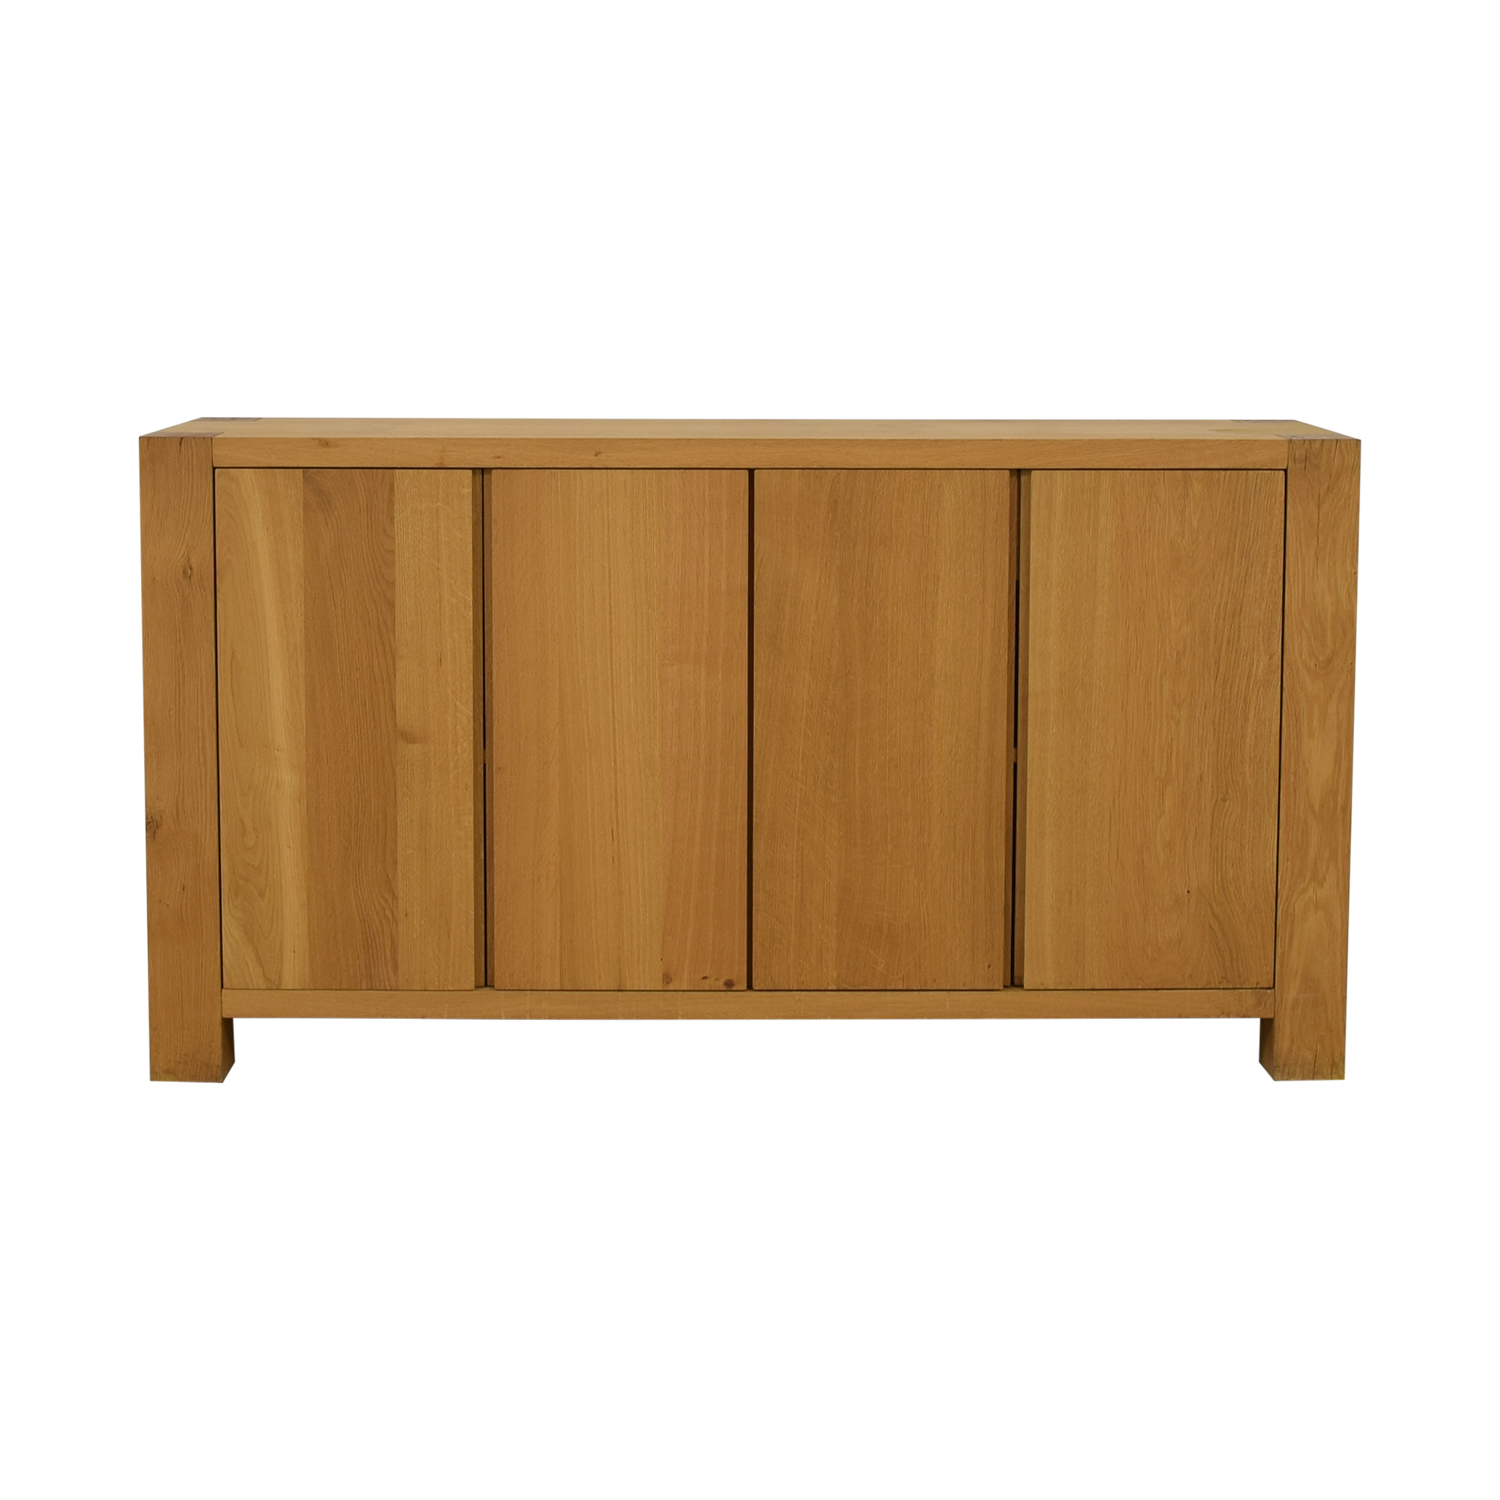 Crate & Barrel Crate & Barrel Big Sur Sideboard second hand